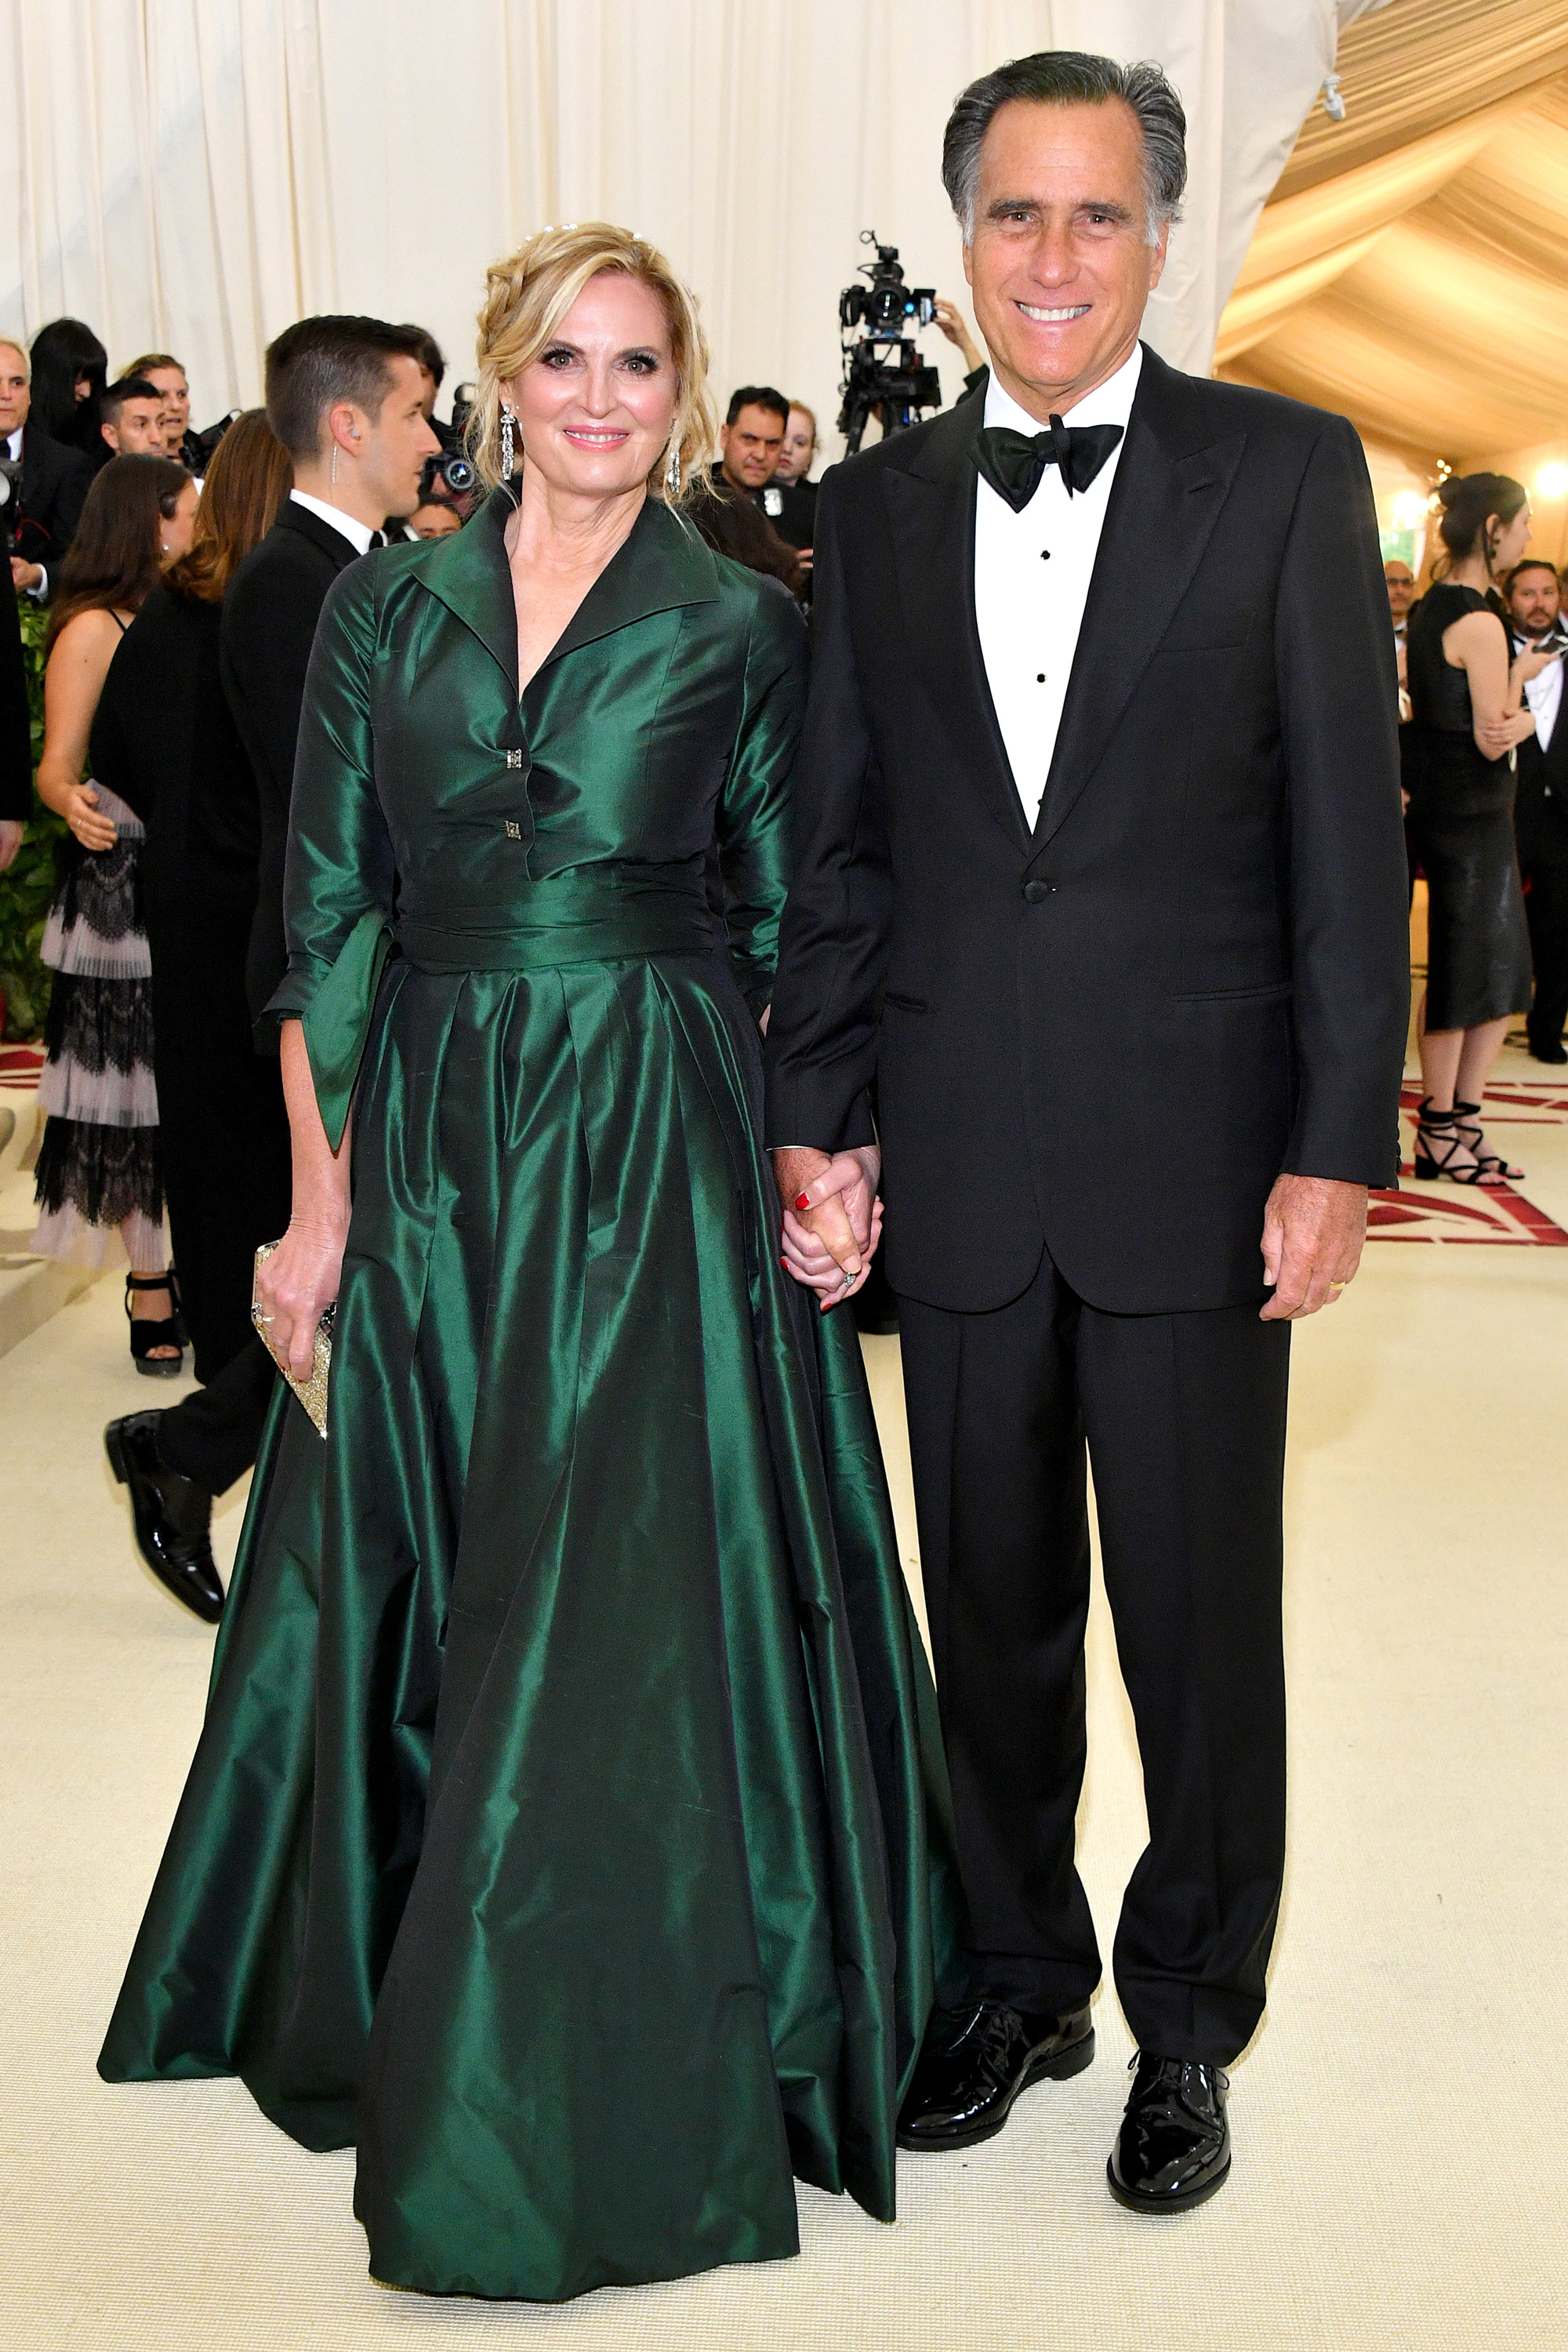 The Most Surprising Names That Have Been on the Met Gala's Guest List